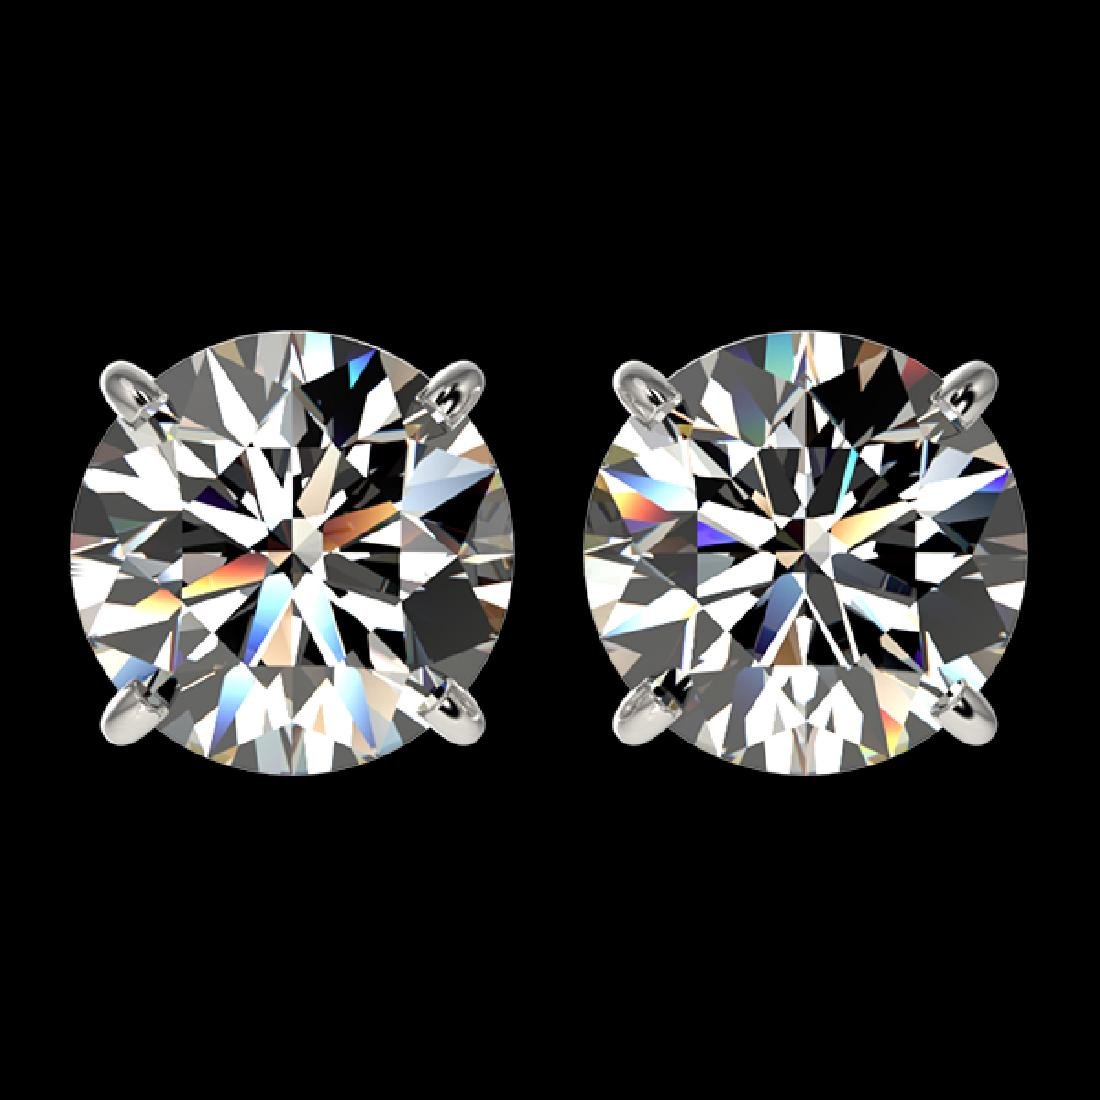 2.55 CTW Certified G-Si Quality Diamond Solitaire Stud